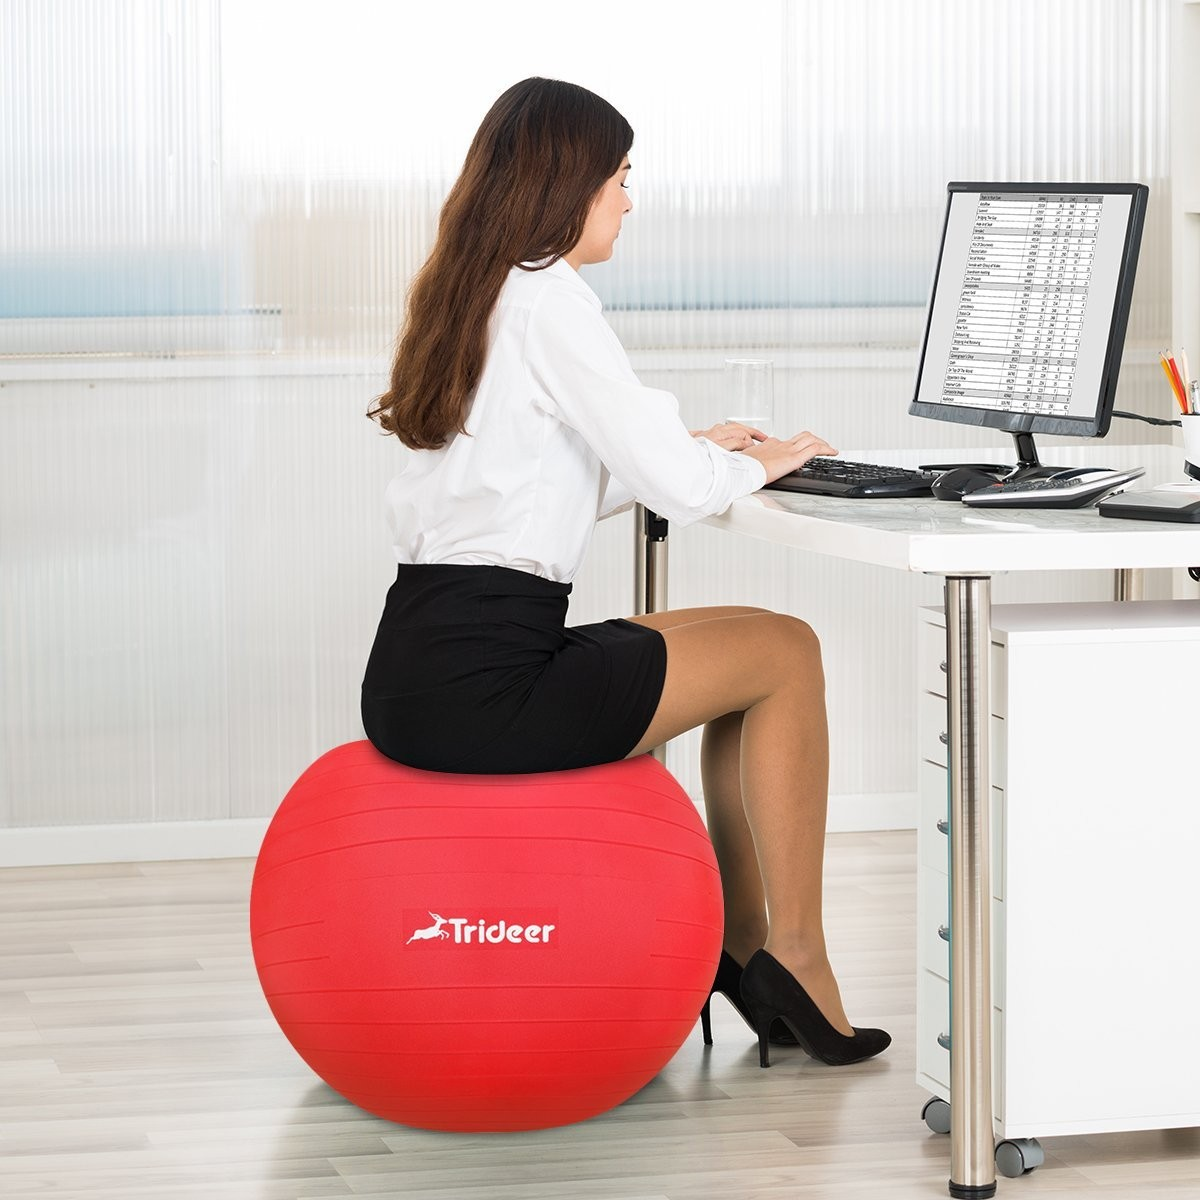 Yoga Ball Desk Chair Trideer Exercise Ball Chair